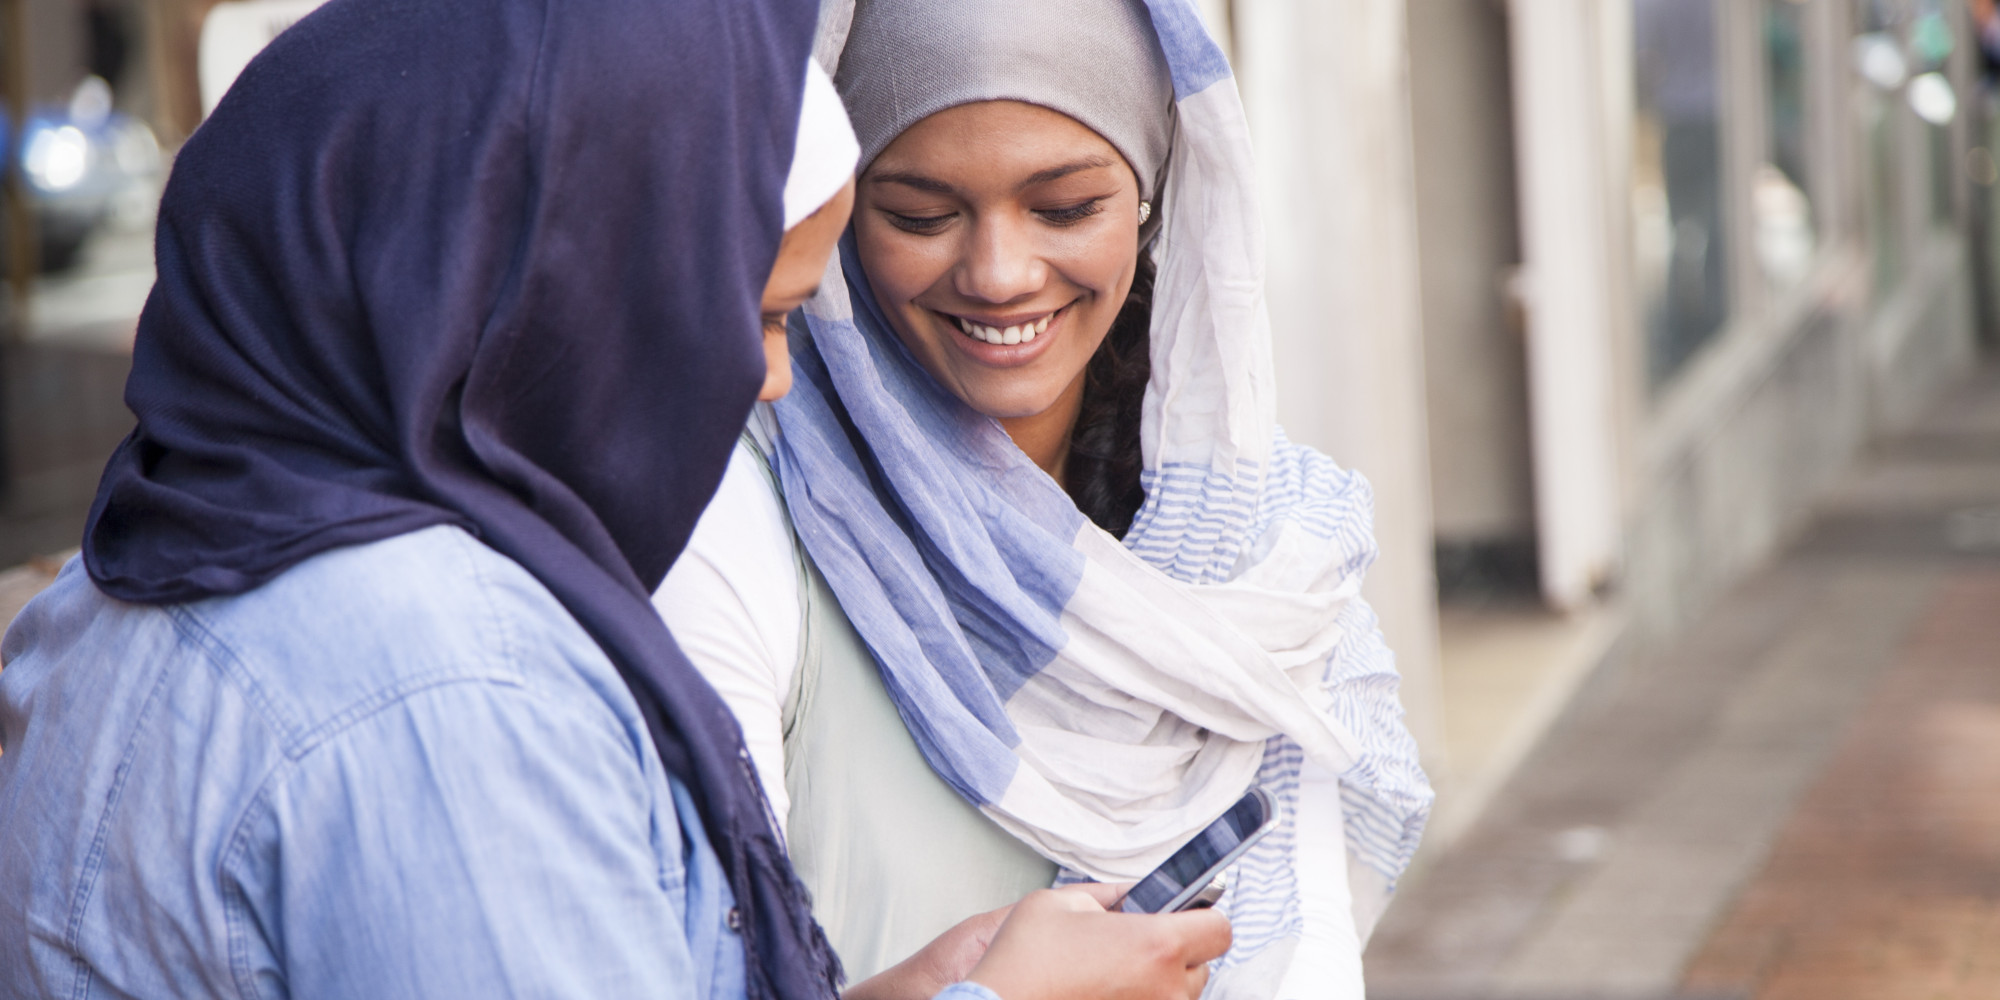 muslim single men in canovanas Meet single women in canovanas interested in meeting new people to date on zoosk over 30 million single people are using zoosk to find people to date.